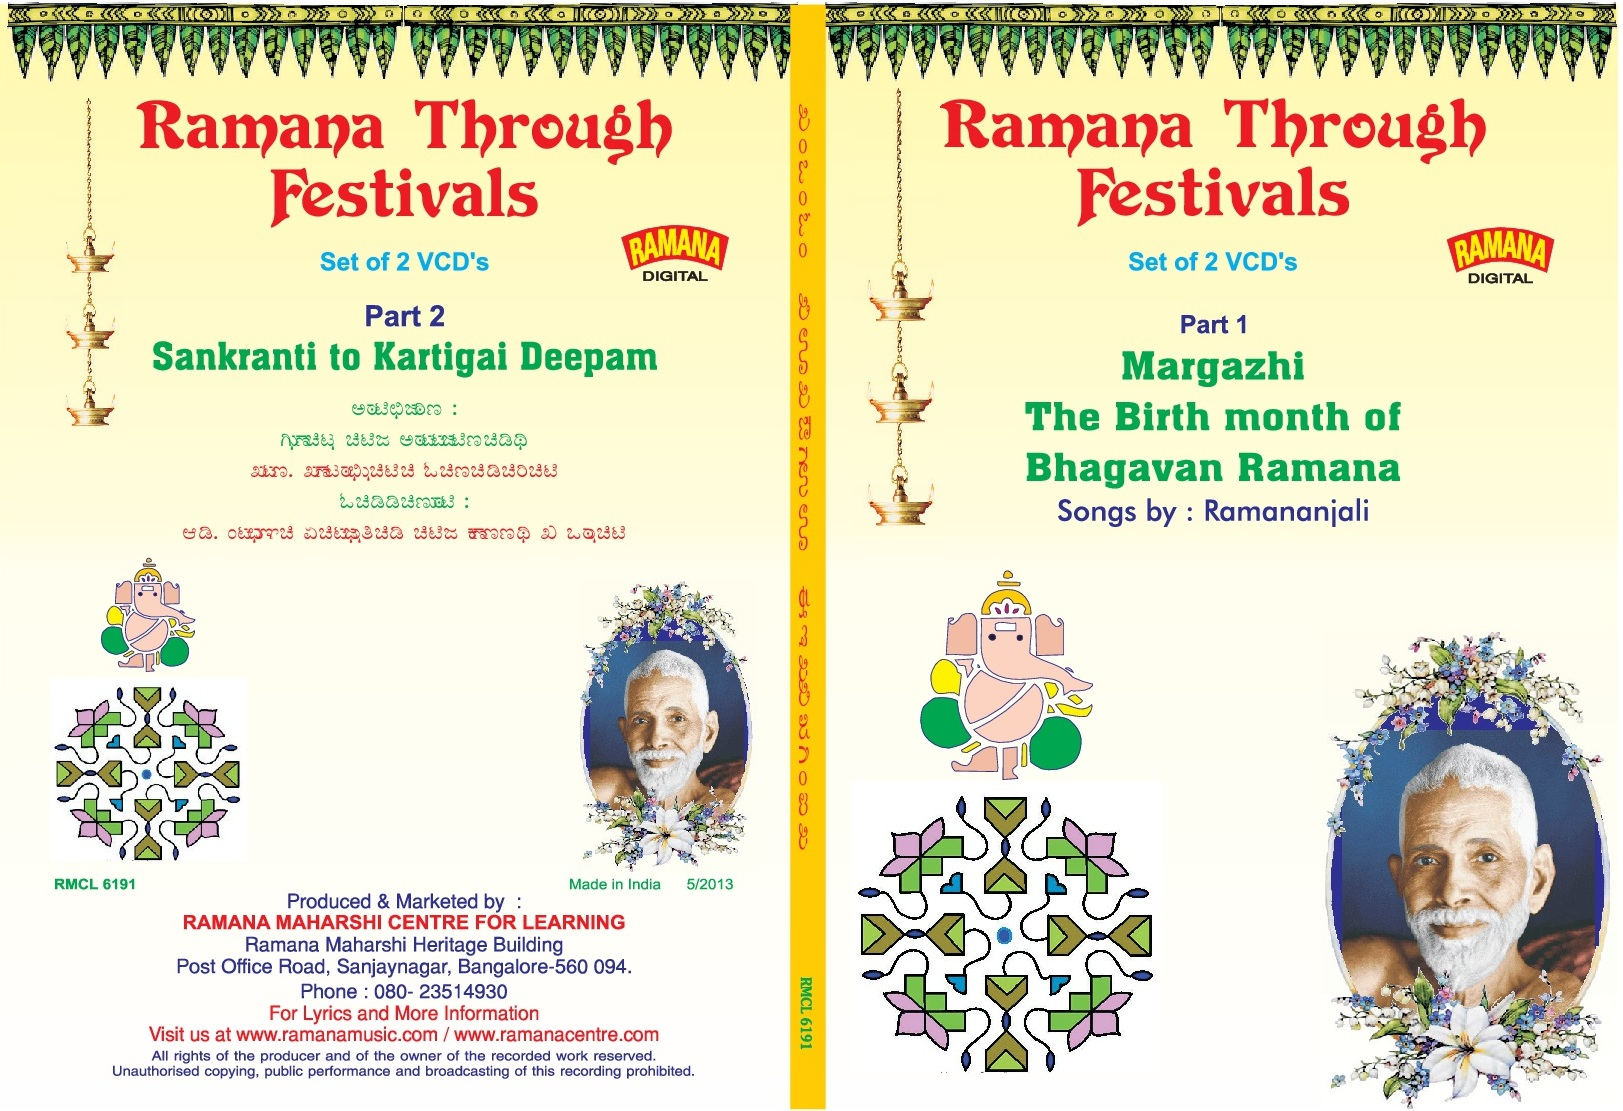 Ramana Through Festivals